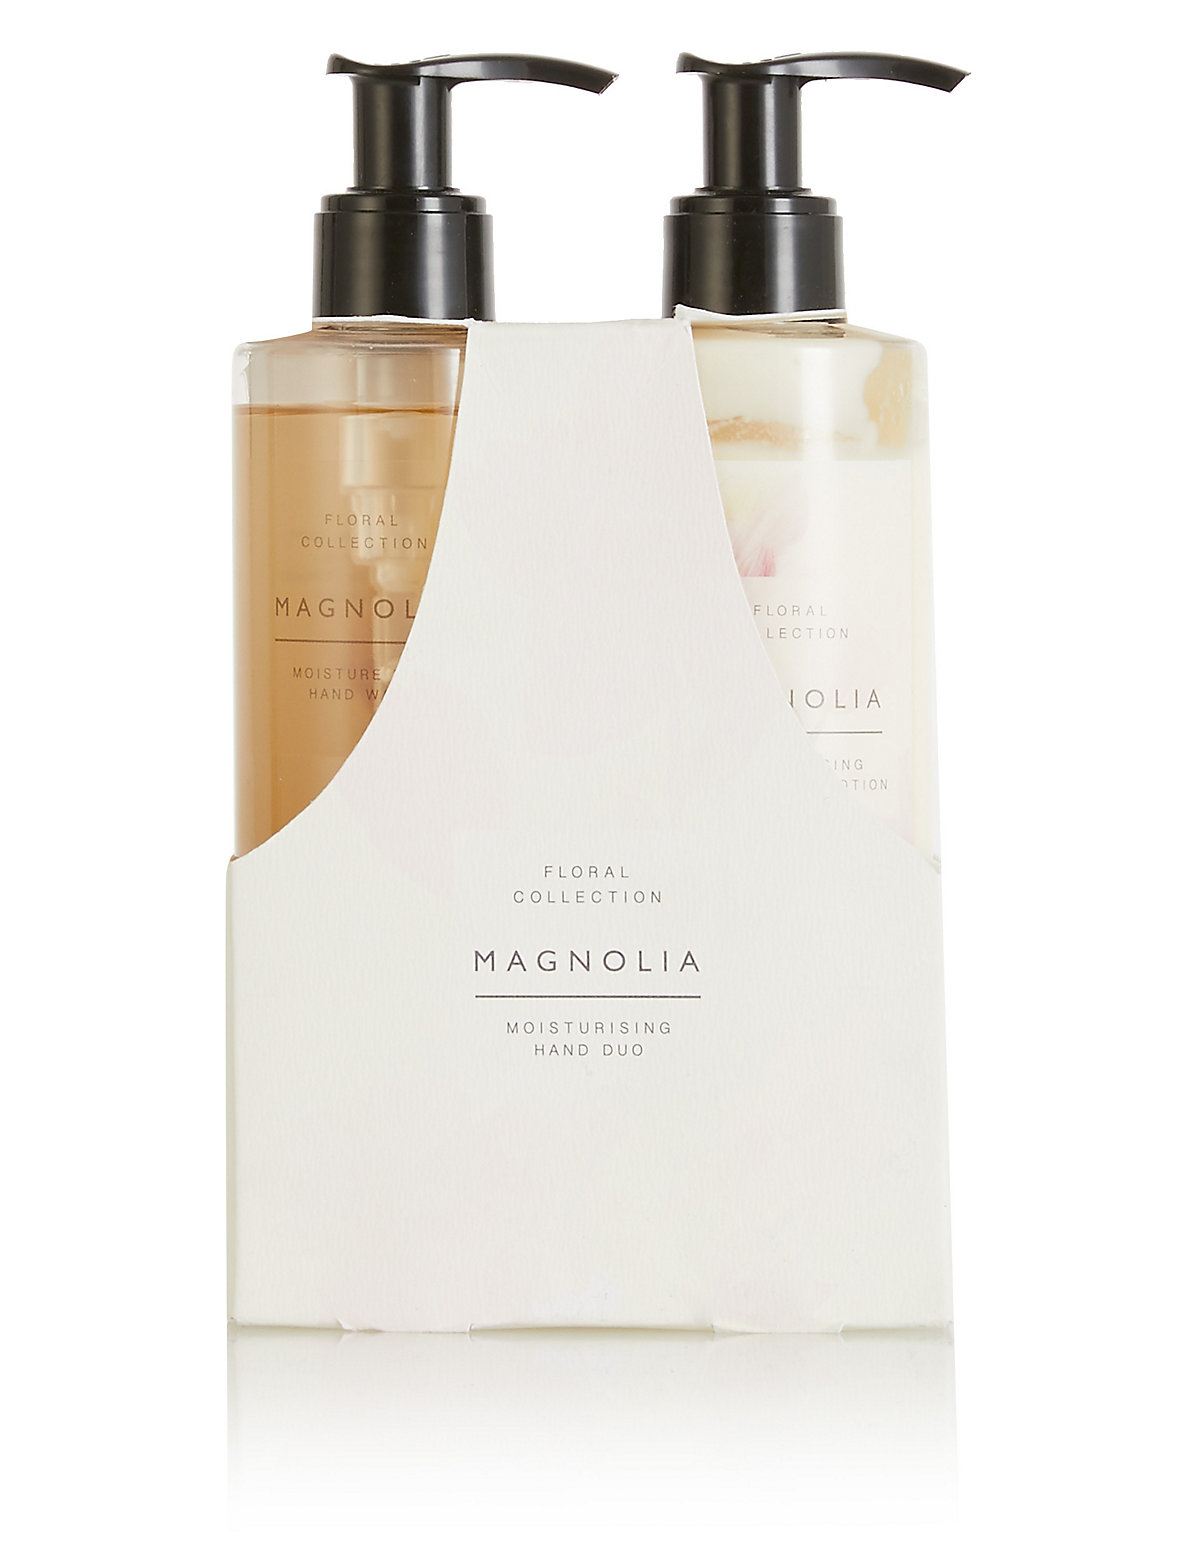 Floral Collection Floral Magnolia Hand Duo Gift Set